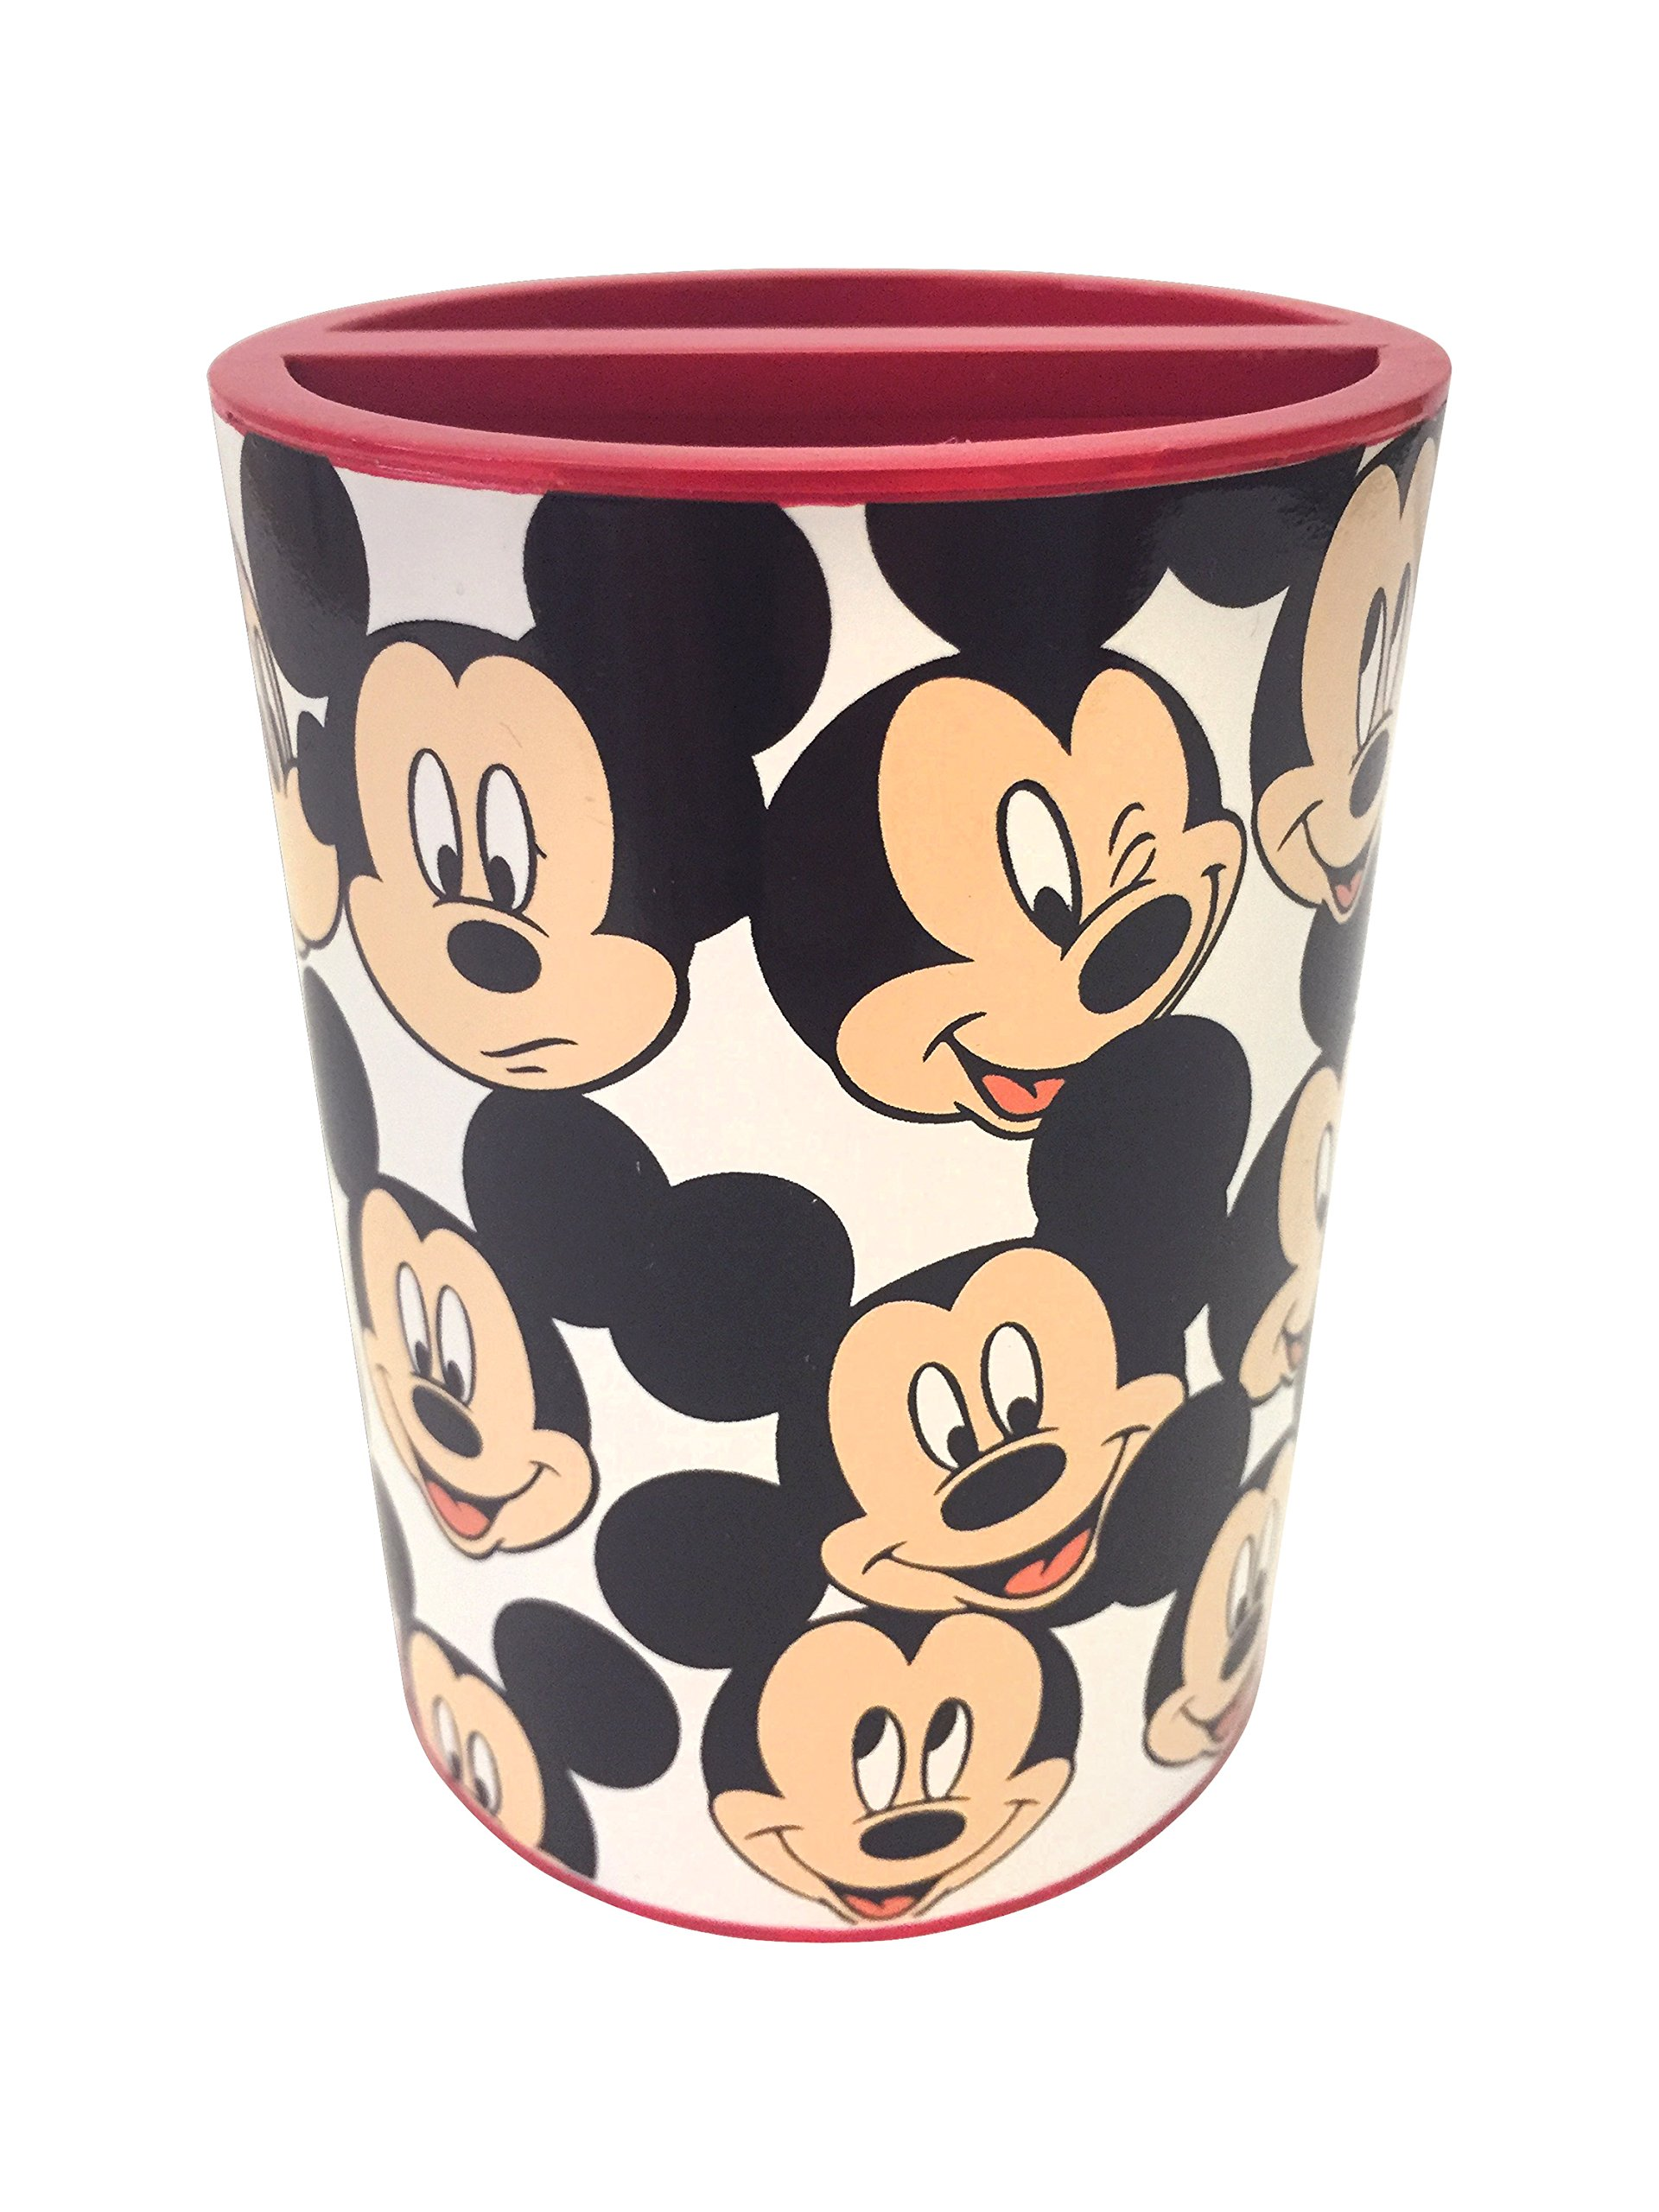 Franco Disney Mickey Mouse Toothbrush Holder